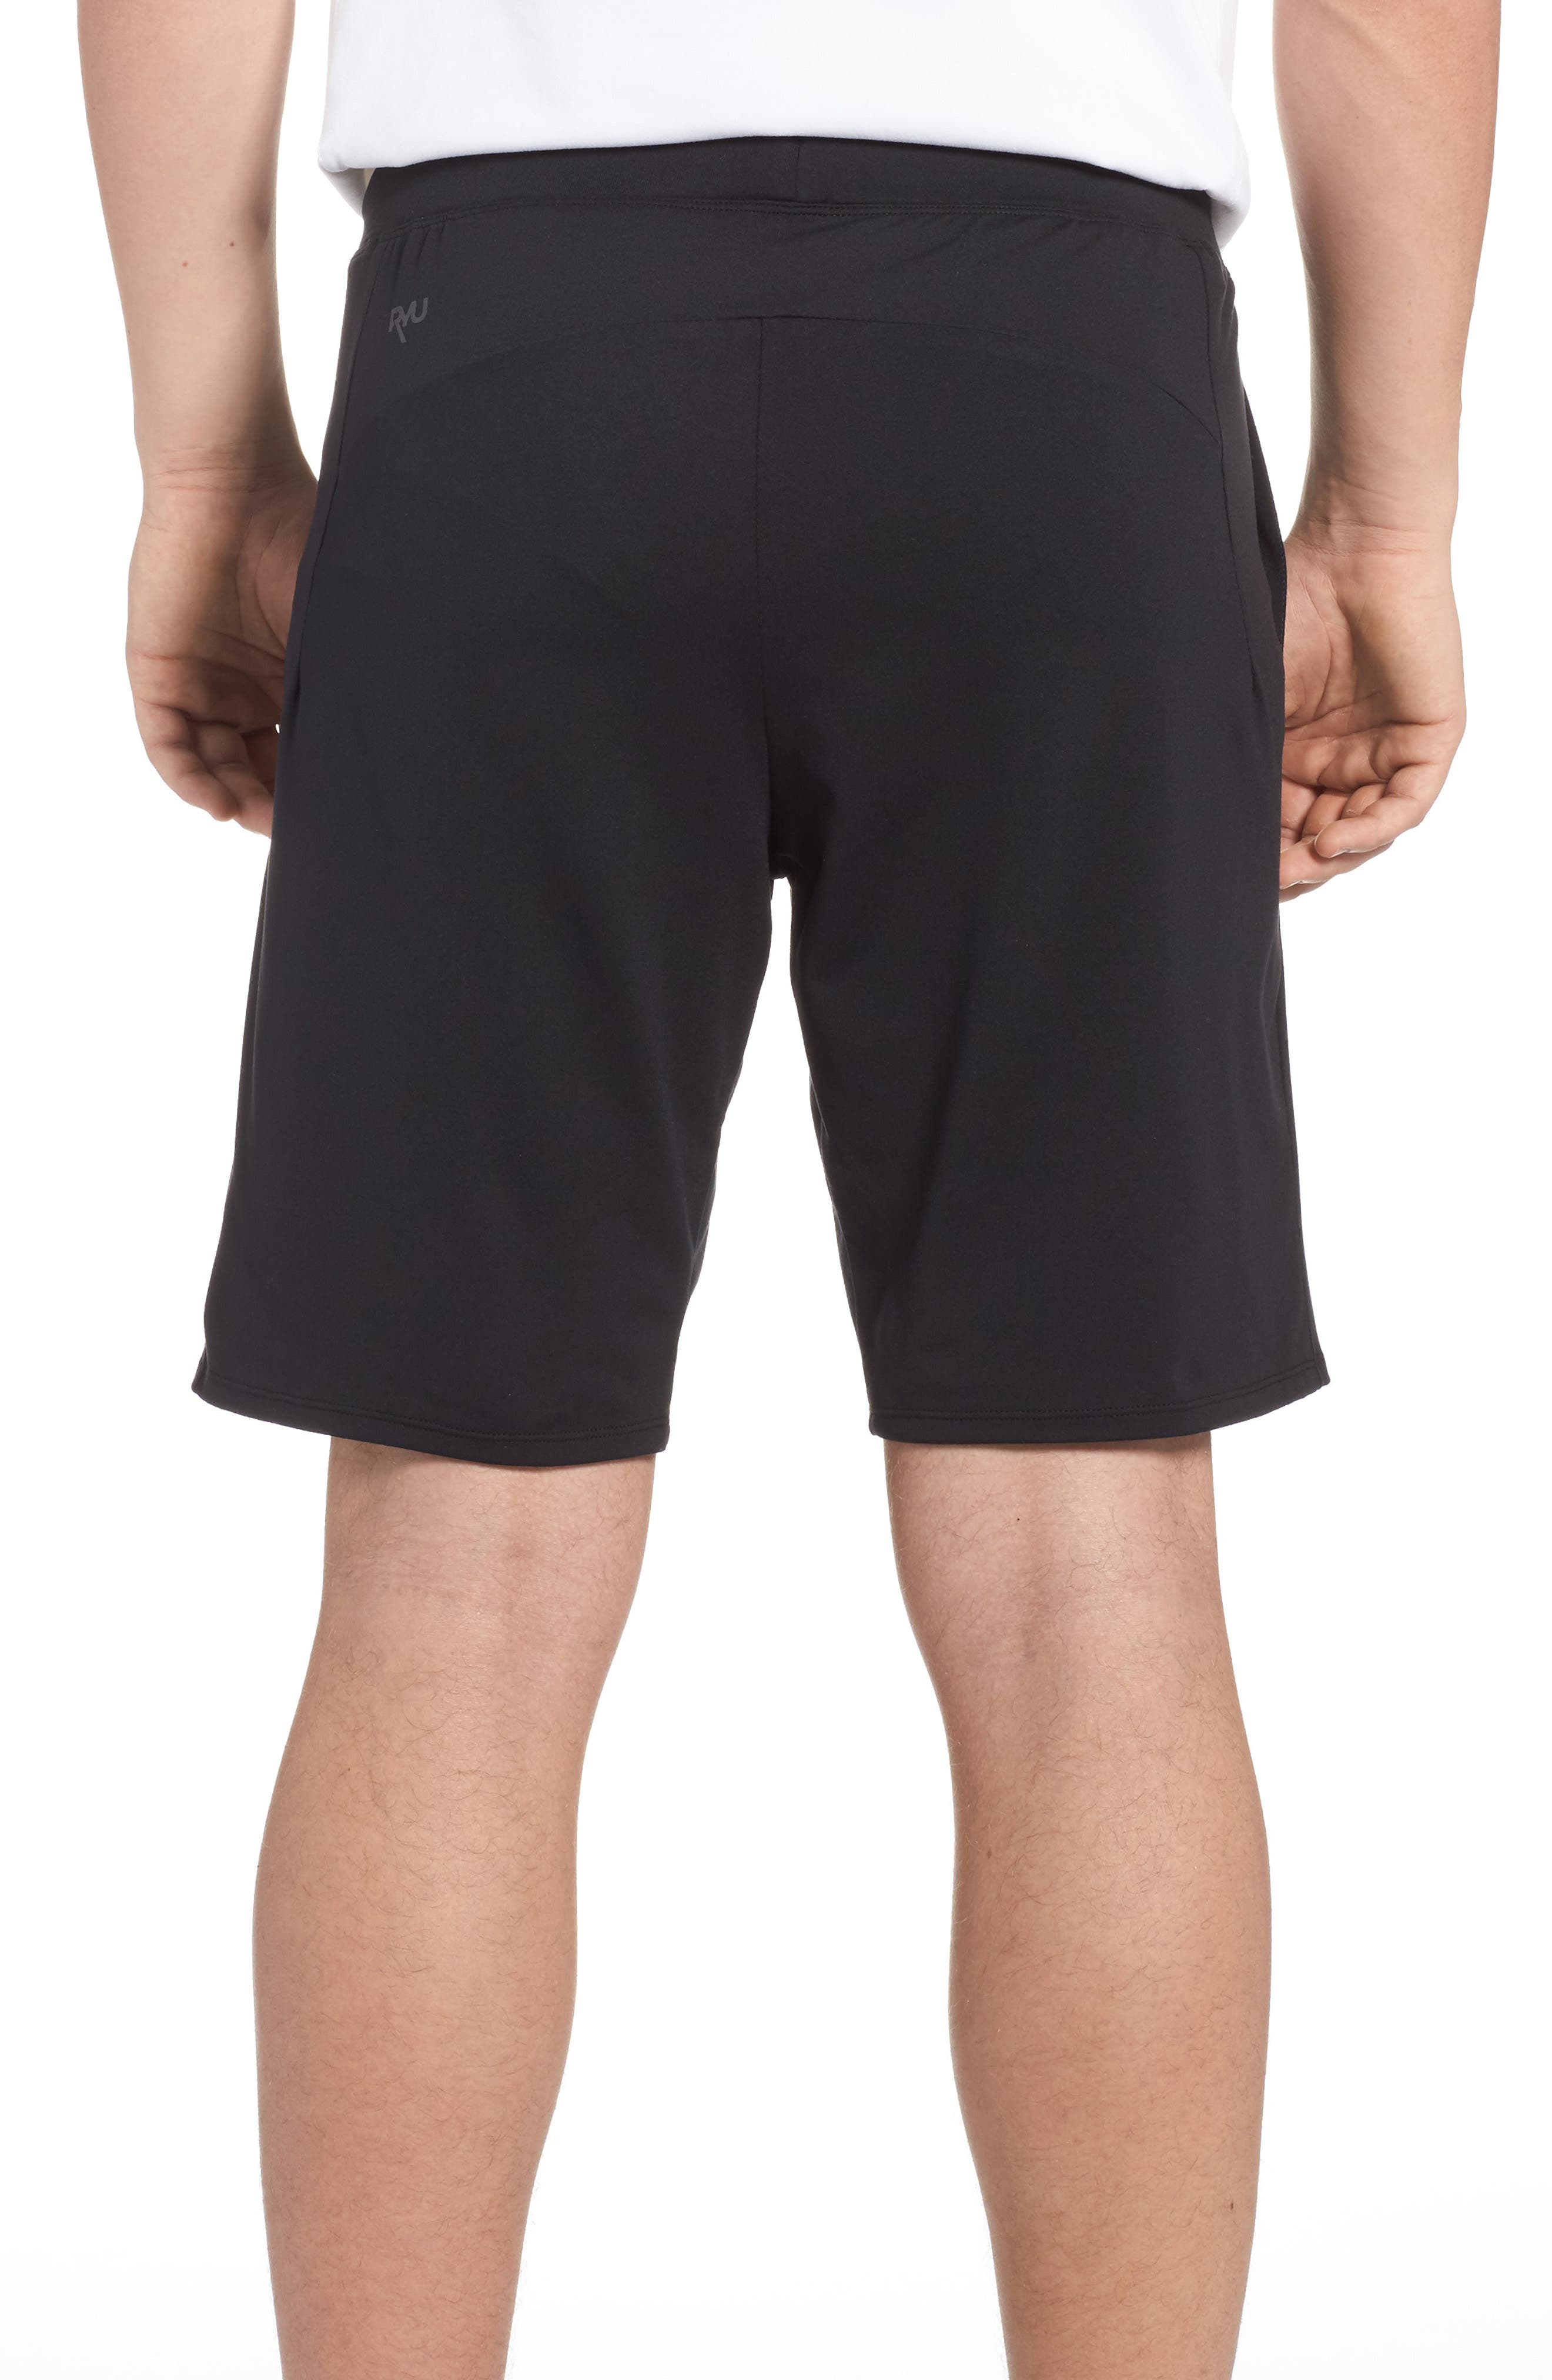 State Athletic Shorts,                             Alternate thumbnail 2, color,                             001